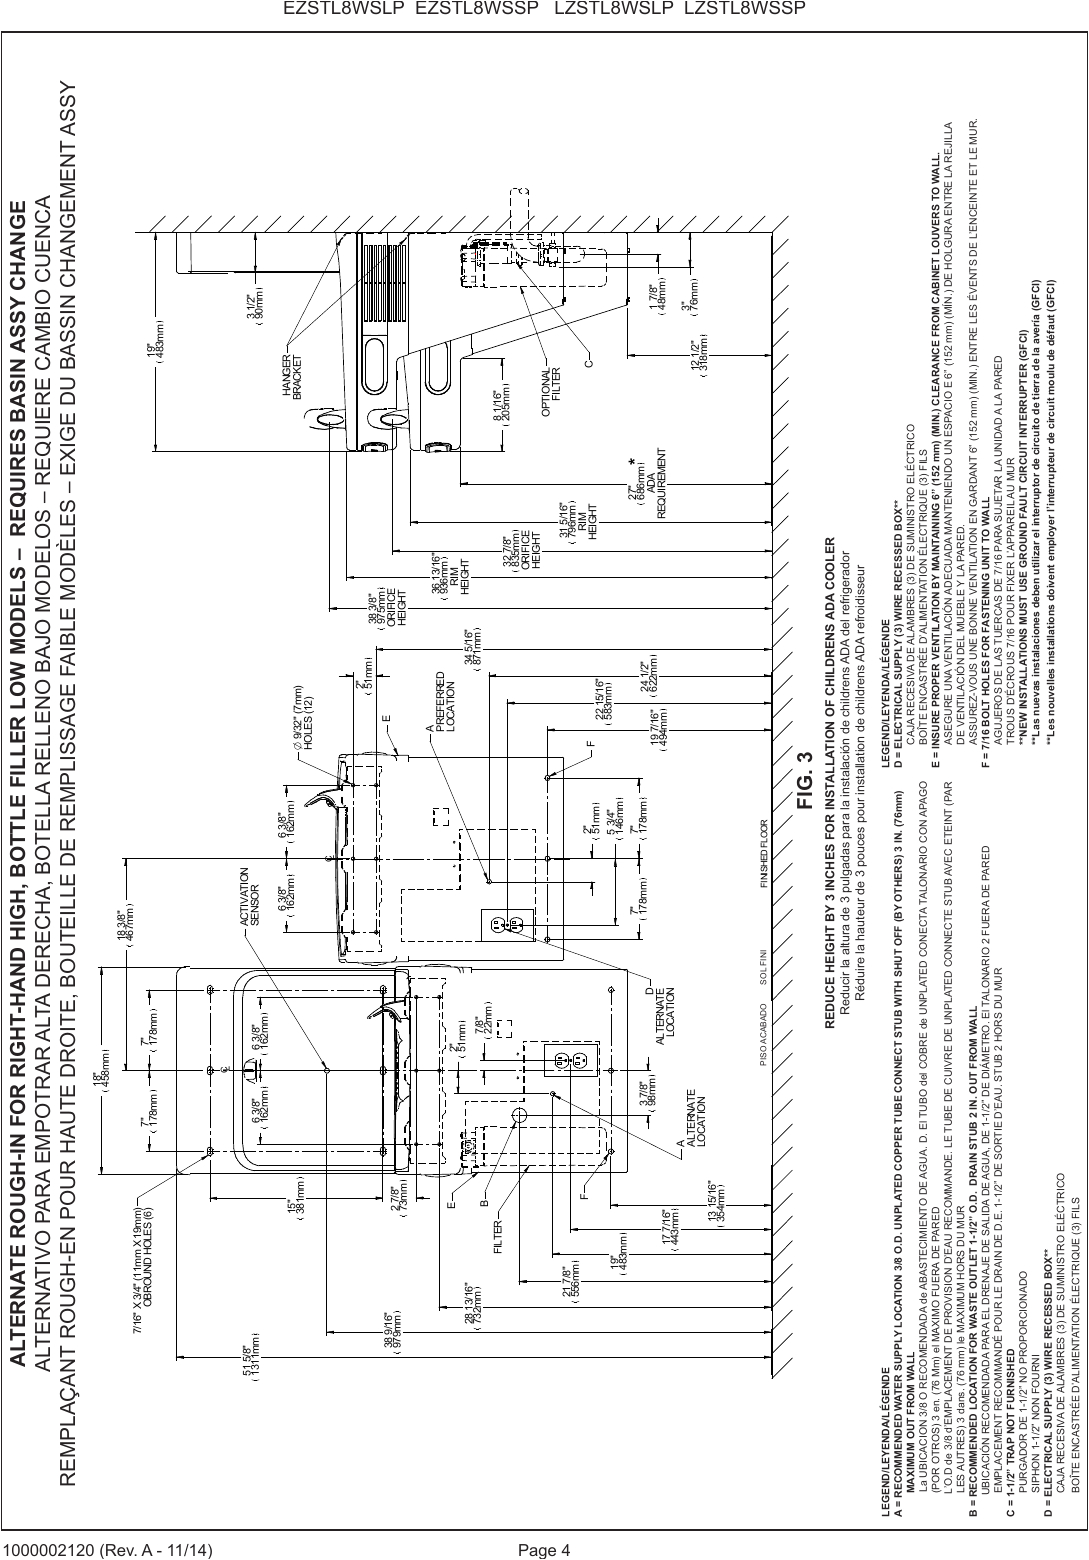 Elkay Water Fountain Wiring Diagram Ezwsna Drinking Fountain and or Bottle Filling Station User